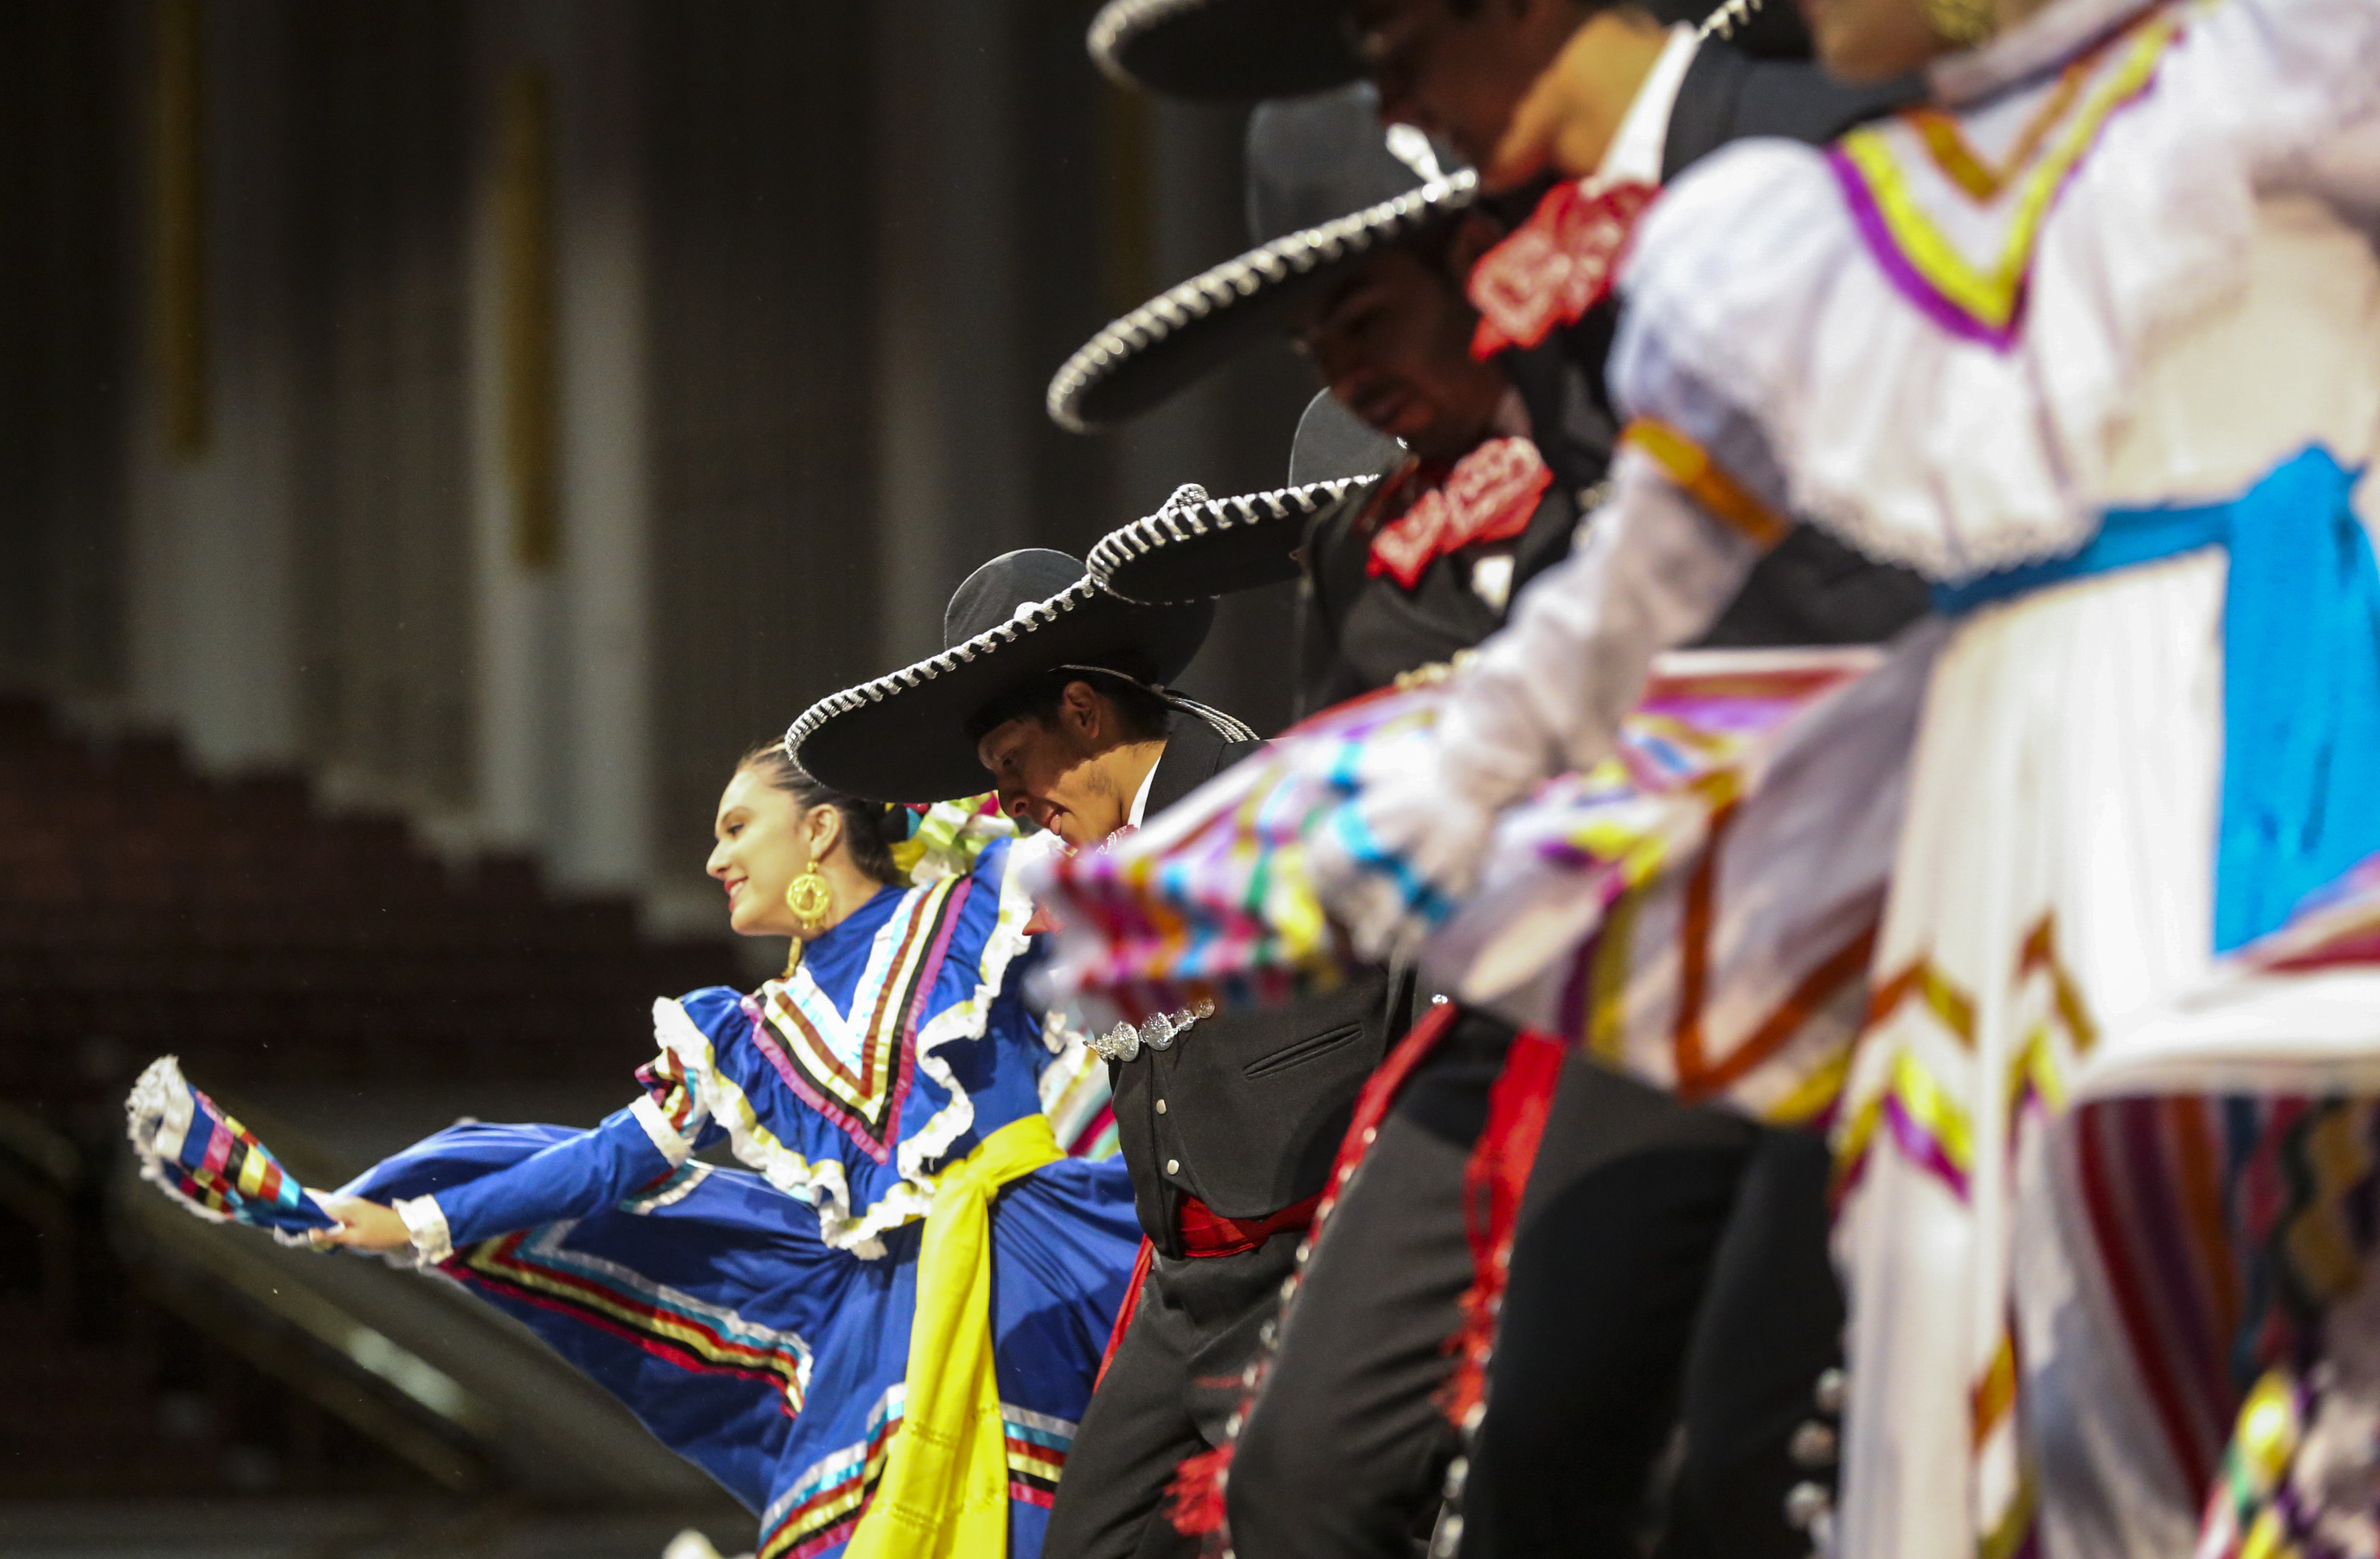 Dancers perform during the dress rehearsal of the Mexican dance Guadalajara LaNegra for the Luz de las Naciones performance at the Conference Center in Salt Lake City on Saturday, Oct. 26, 2019.